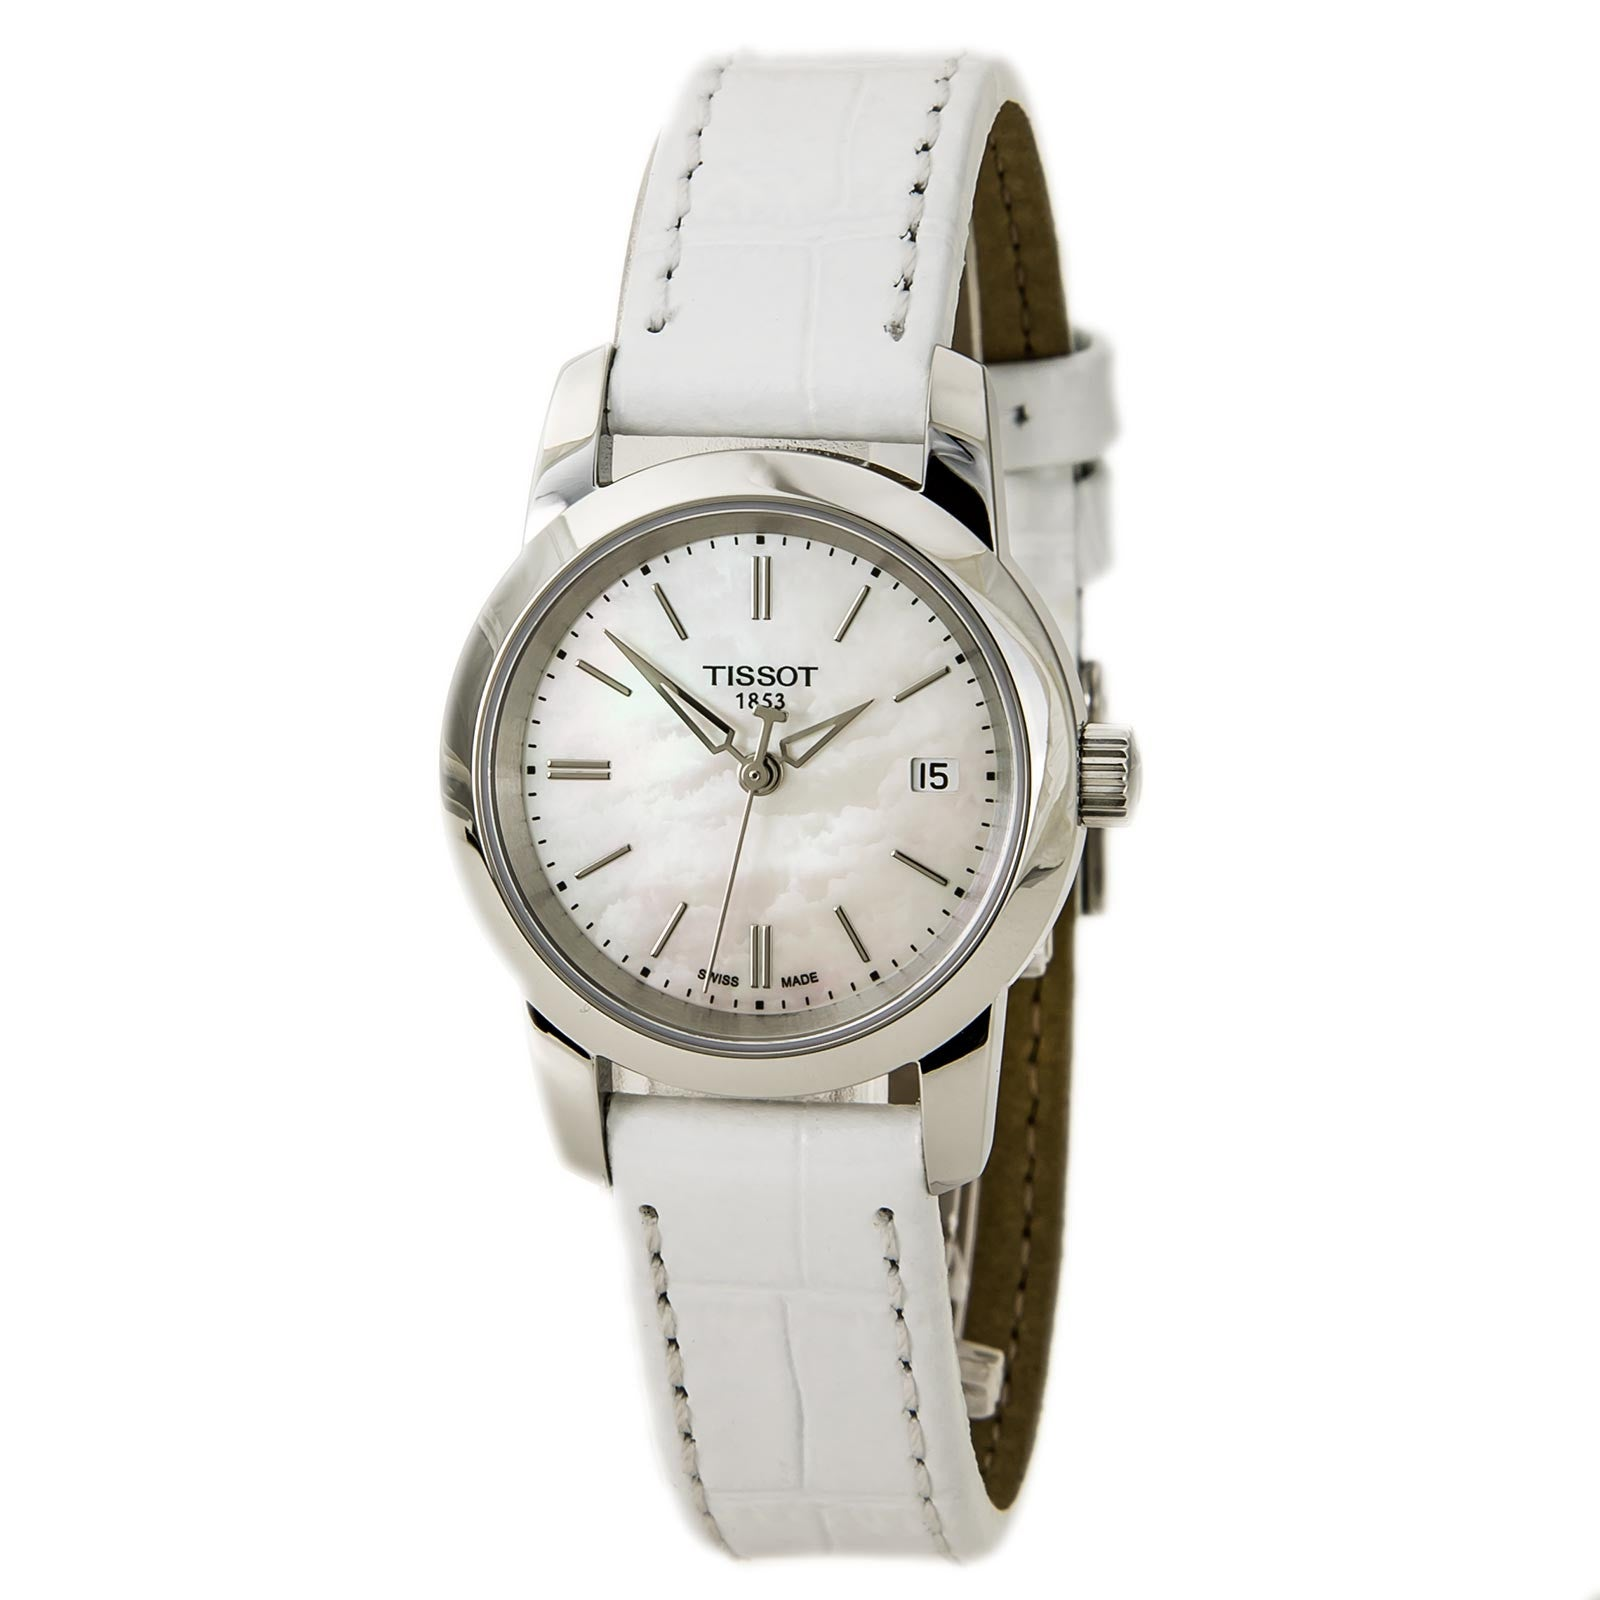 Tissot Womens Watches For Sale Online At T Race Ladies T0482171701700 T0332101611100 Classic Dream Mop White Dial Leather Strap Watch